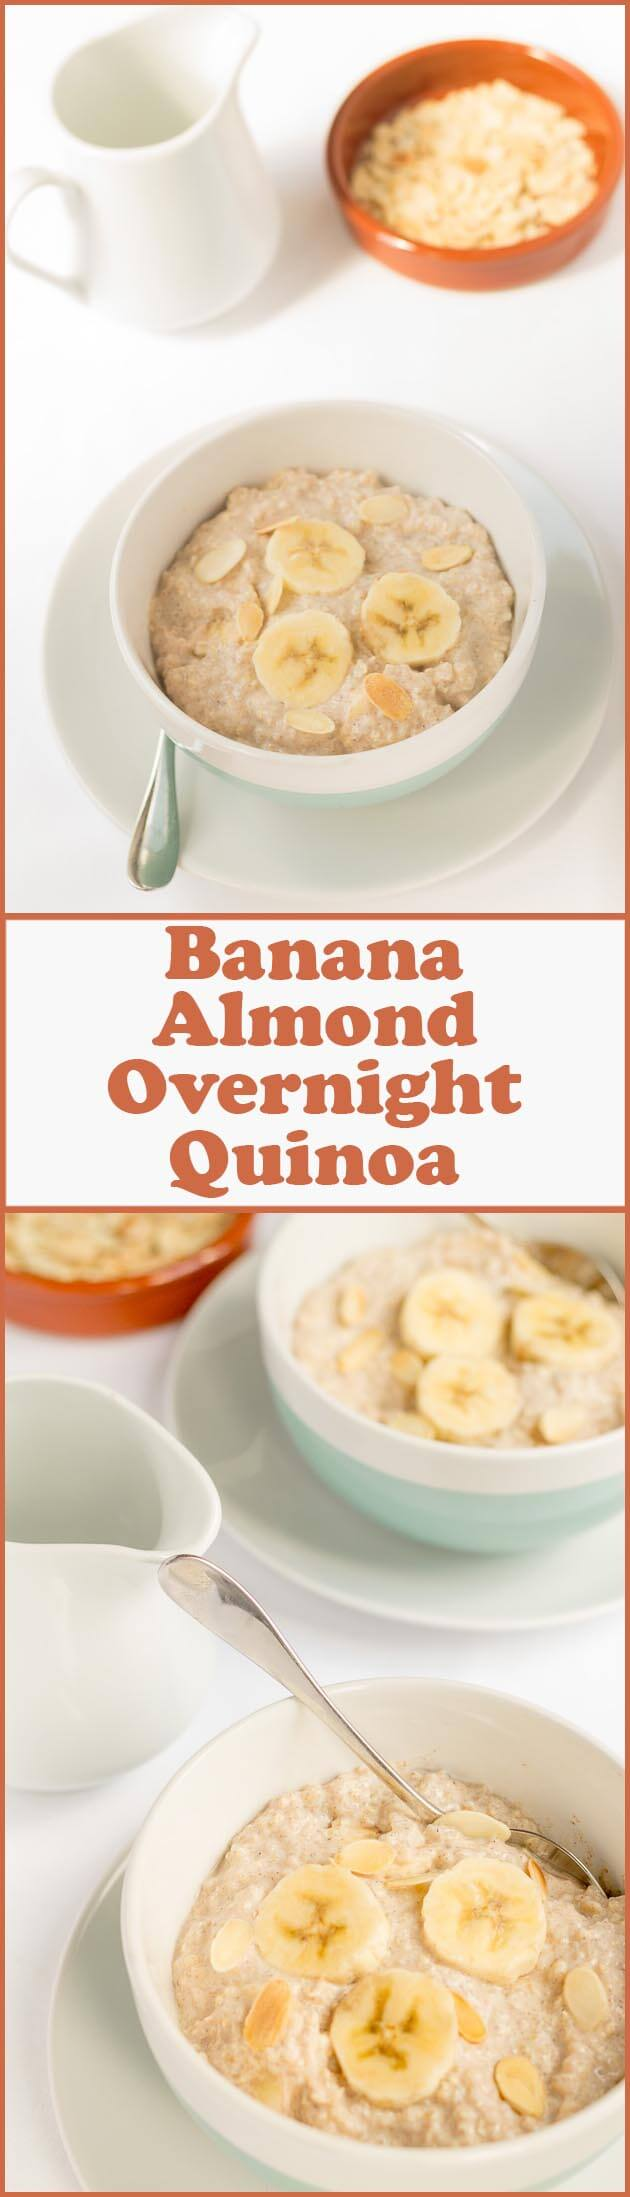 Banana almond overnight quinoa is a really quick, easy and delicious bowl of nutrition to get you started first thing in the morning. It's great waking up and knowing your day starts with this.